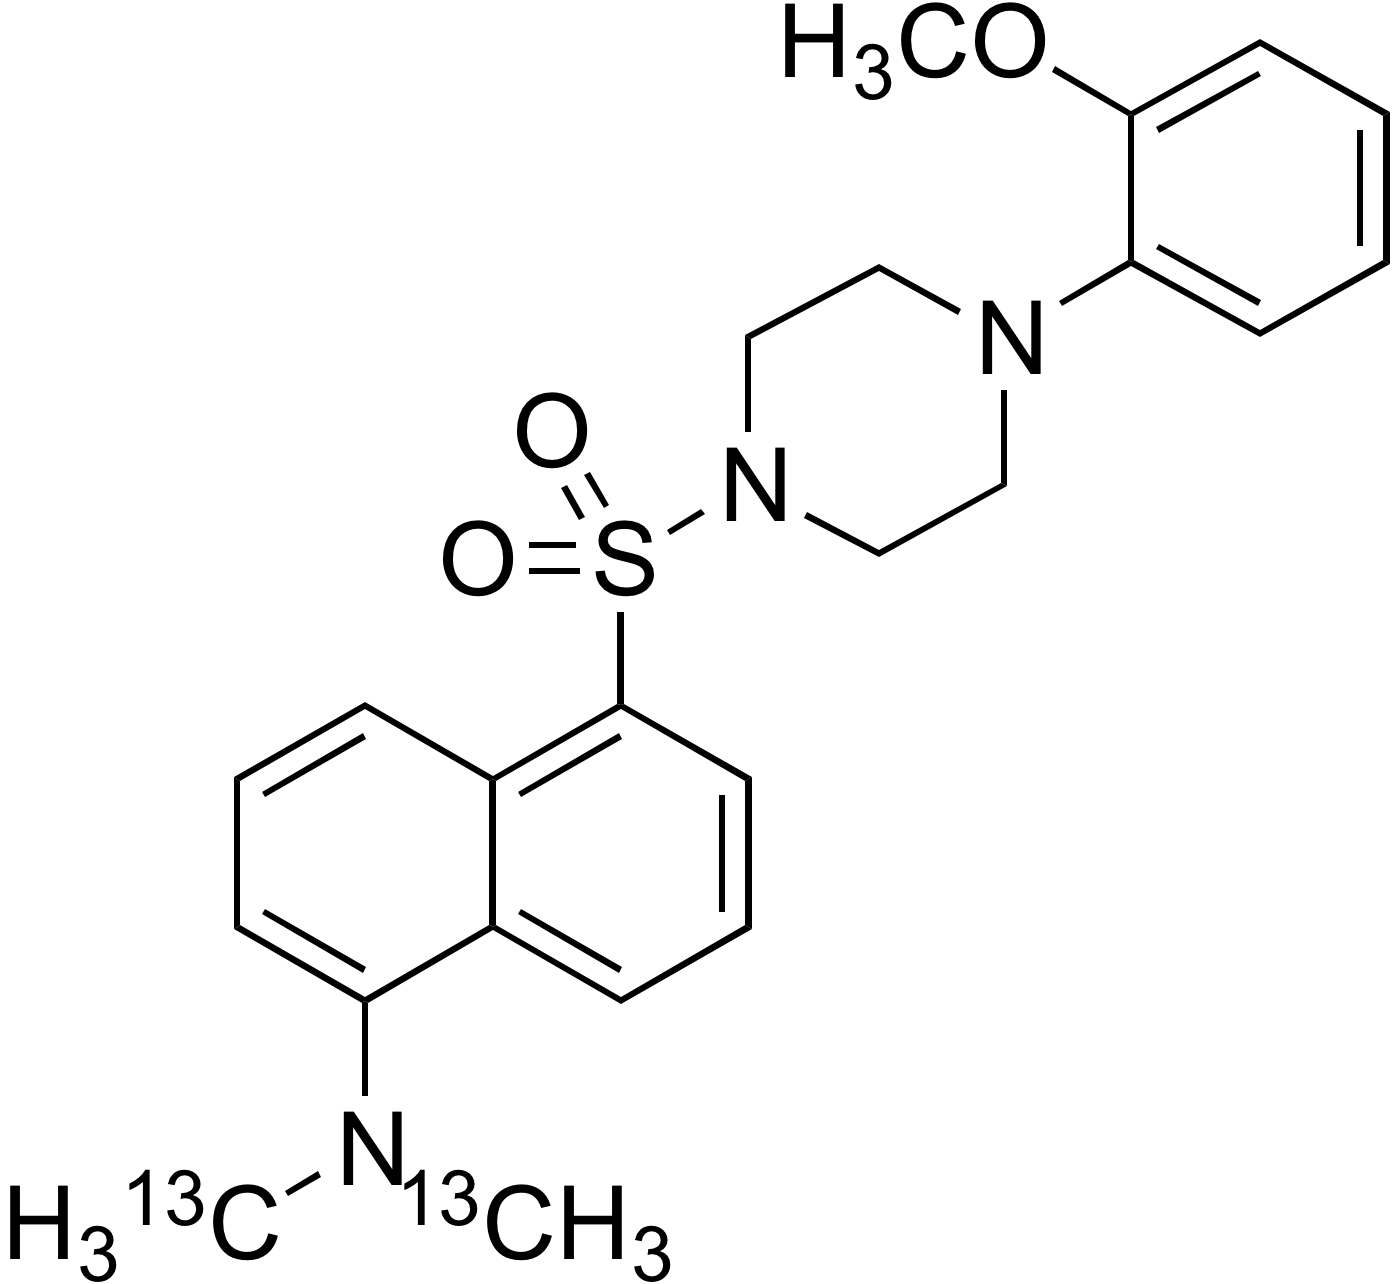 N-Dansyl-<sup>13</sup>C<sub>2</sub>-1-(2-methoxyphenyl)piperazine